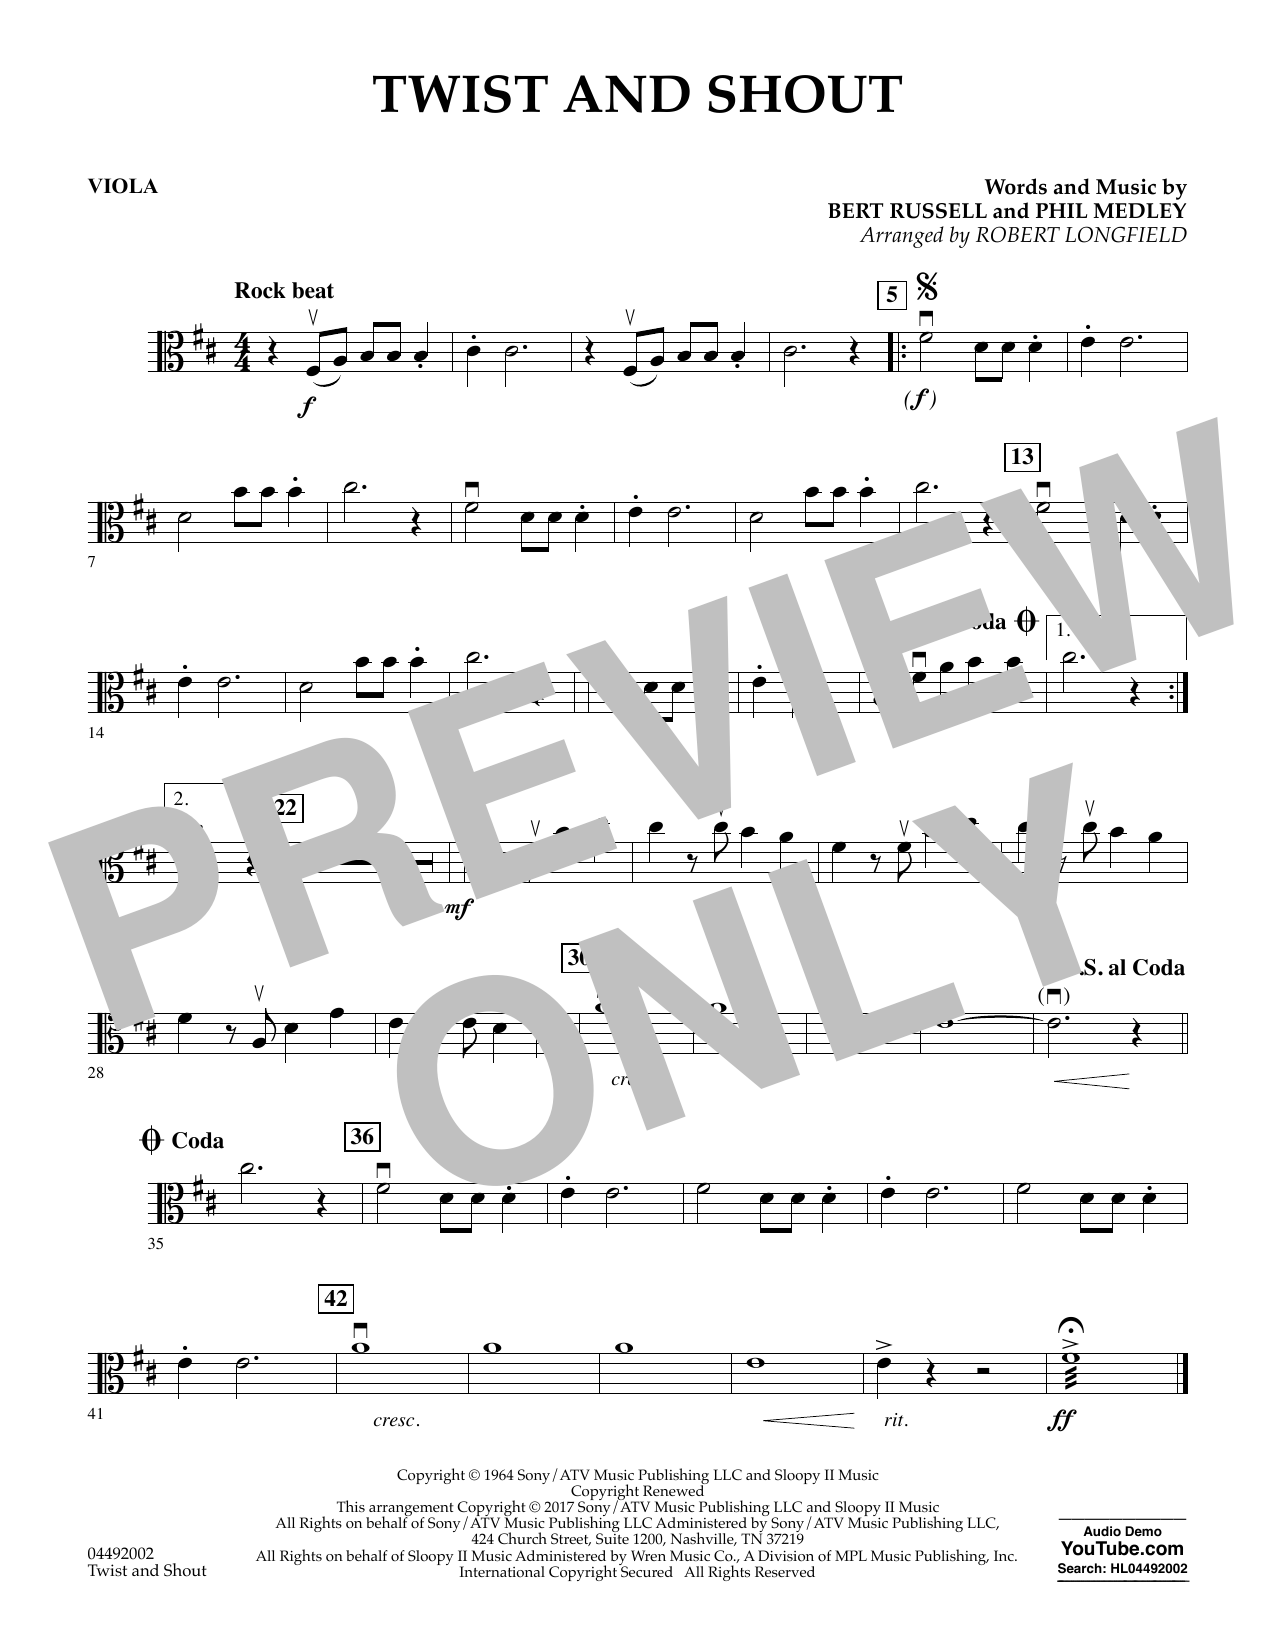 Robert Longfield Twist and Shout - Viola sheet music notes and chords. Download Printable PDF.